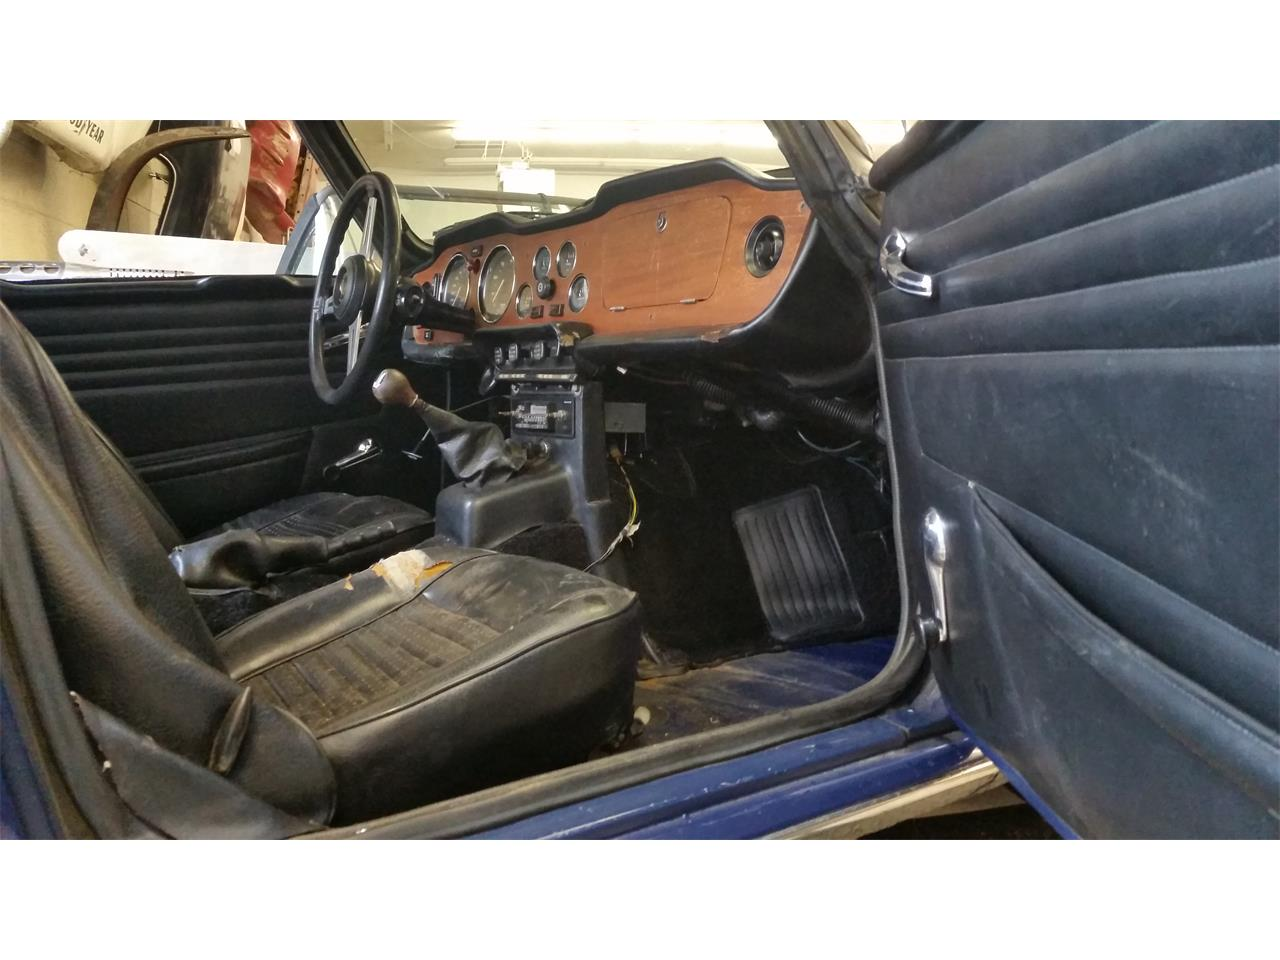 1973 Triumph TR6 for sale in Carnation, WA – photo 9